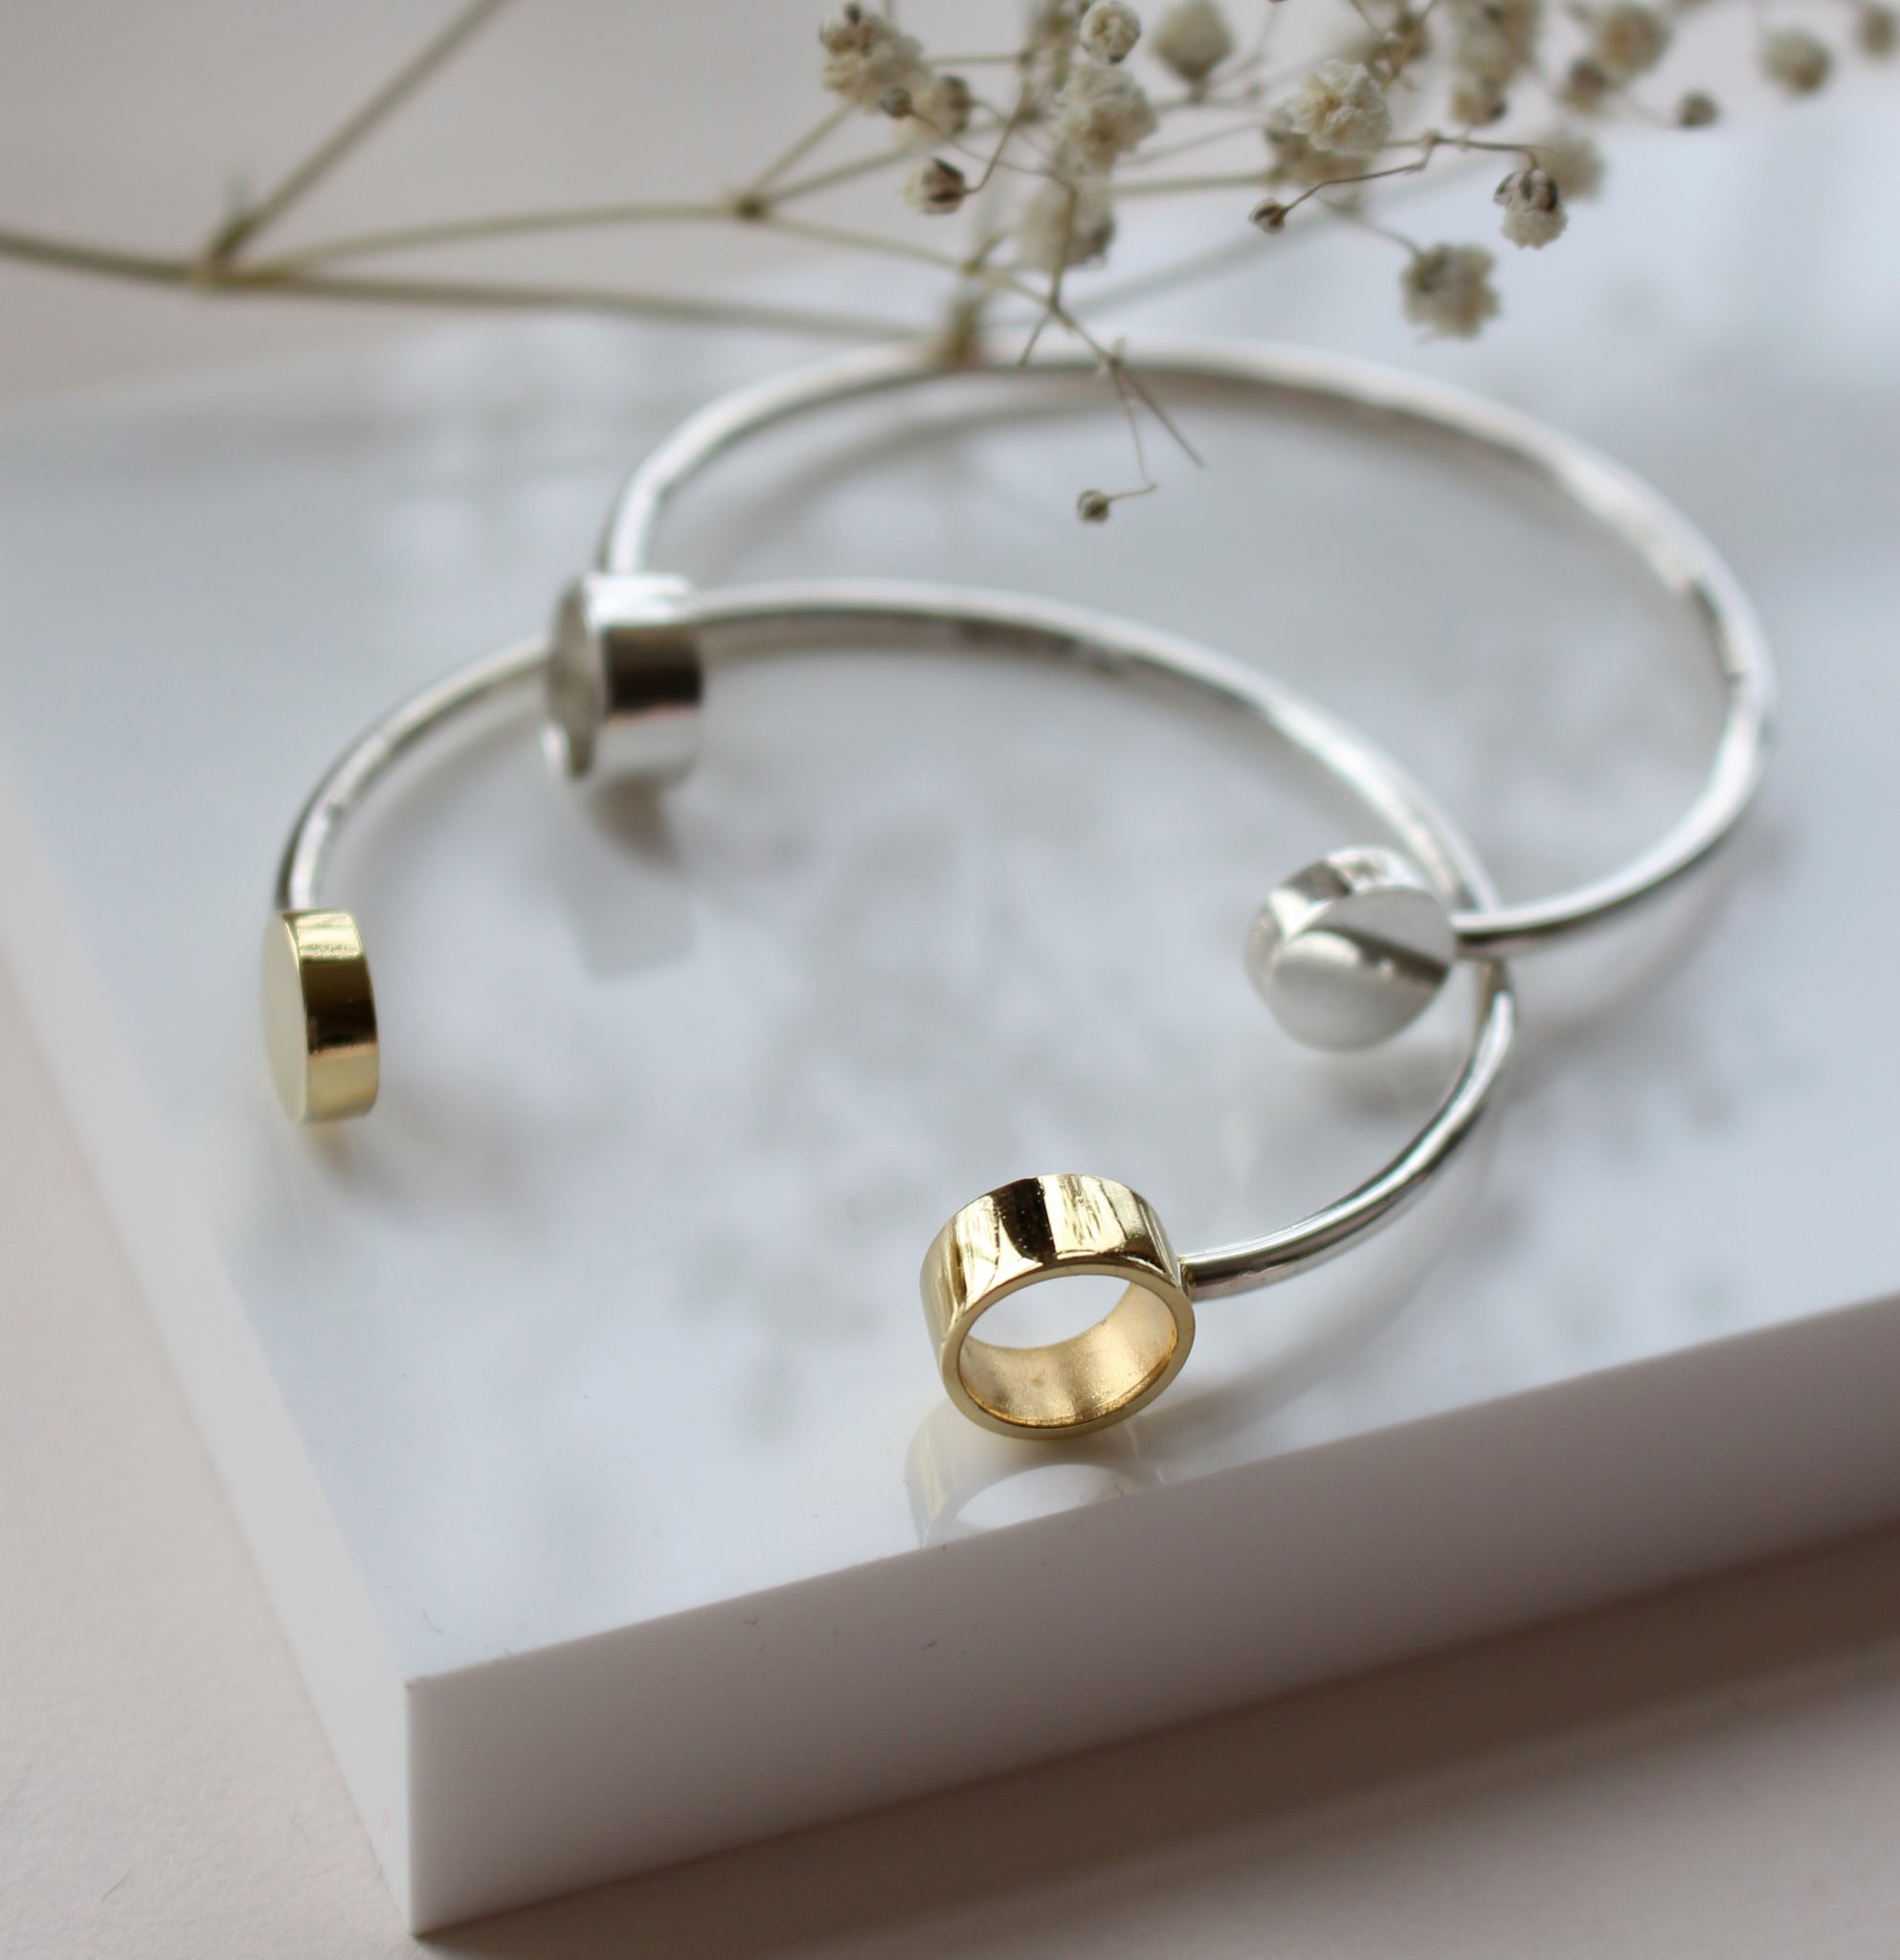 AMATI NEGATIVE SPACE BANGLE